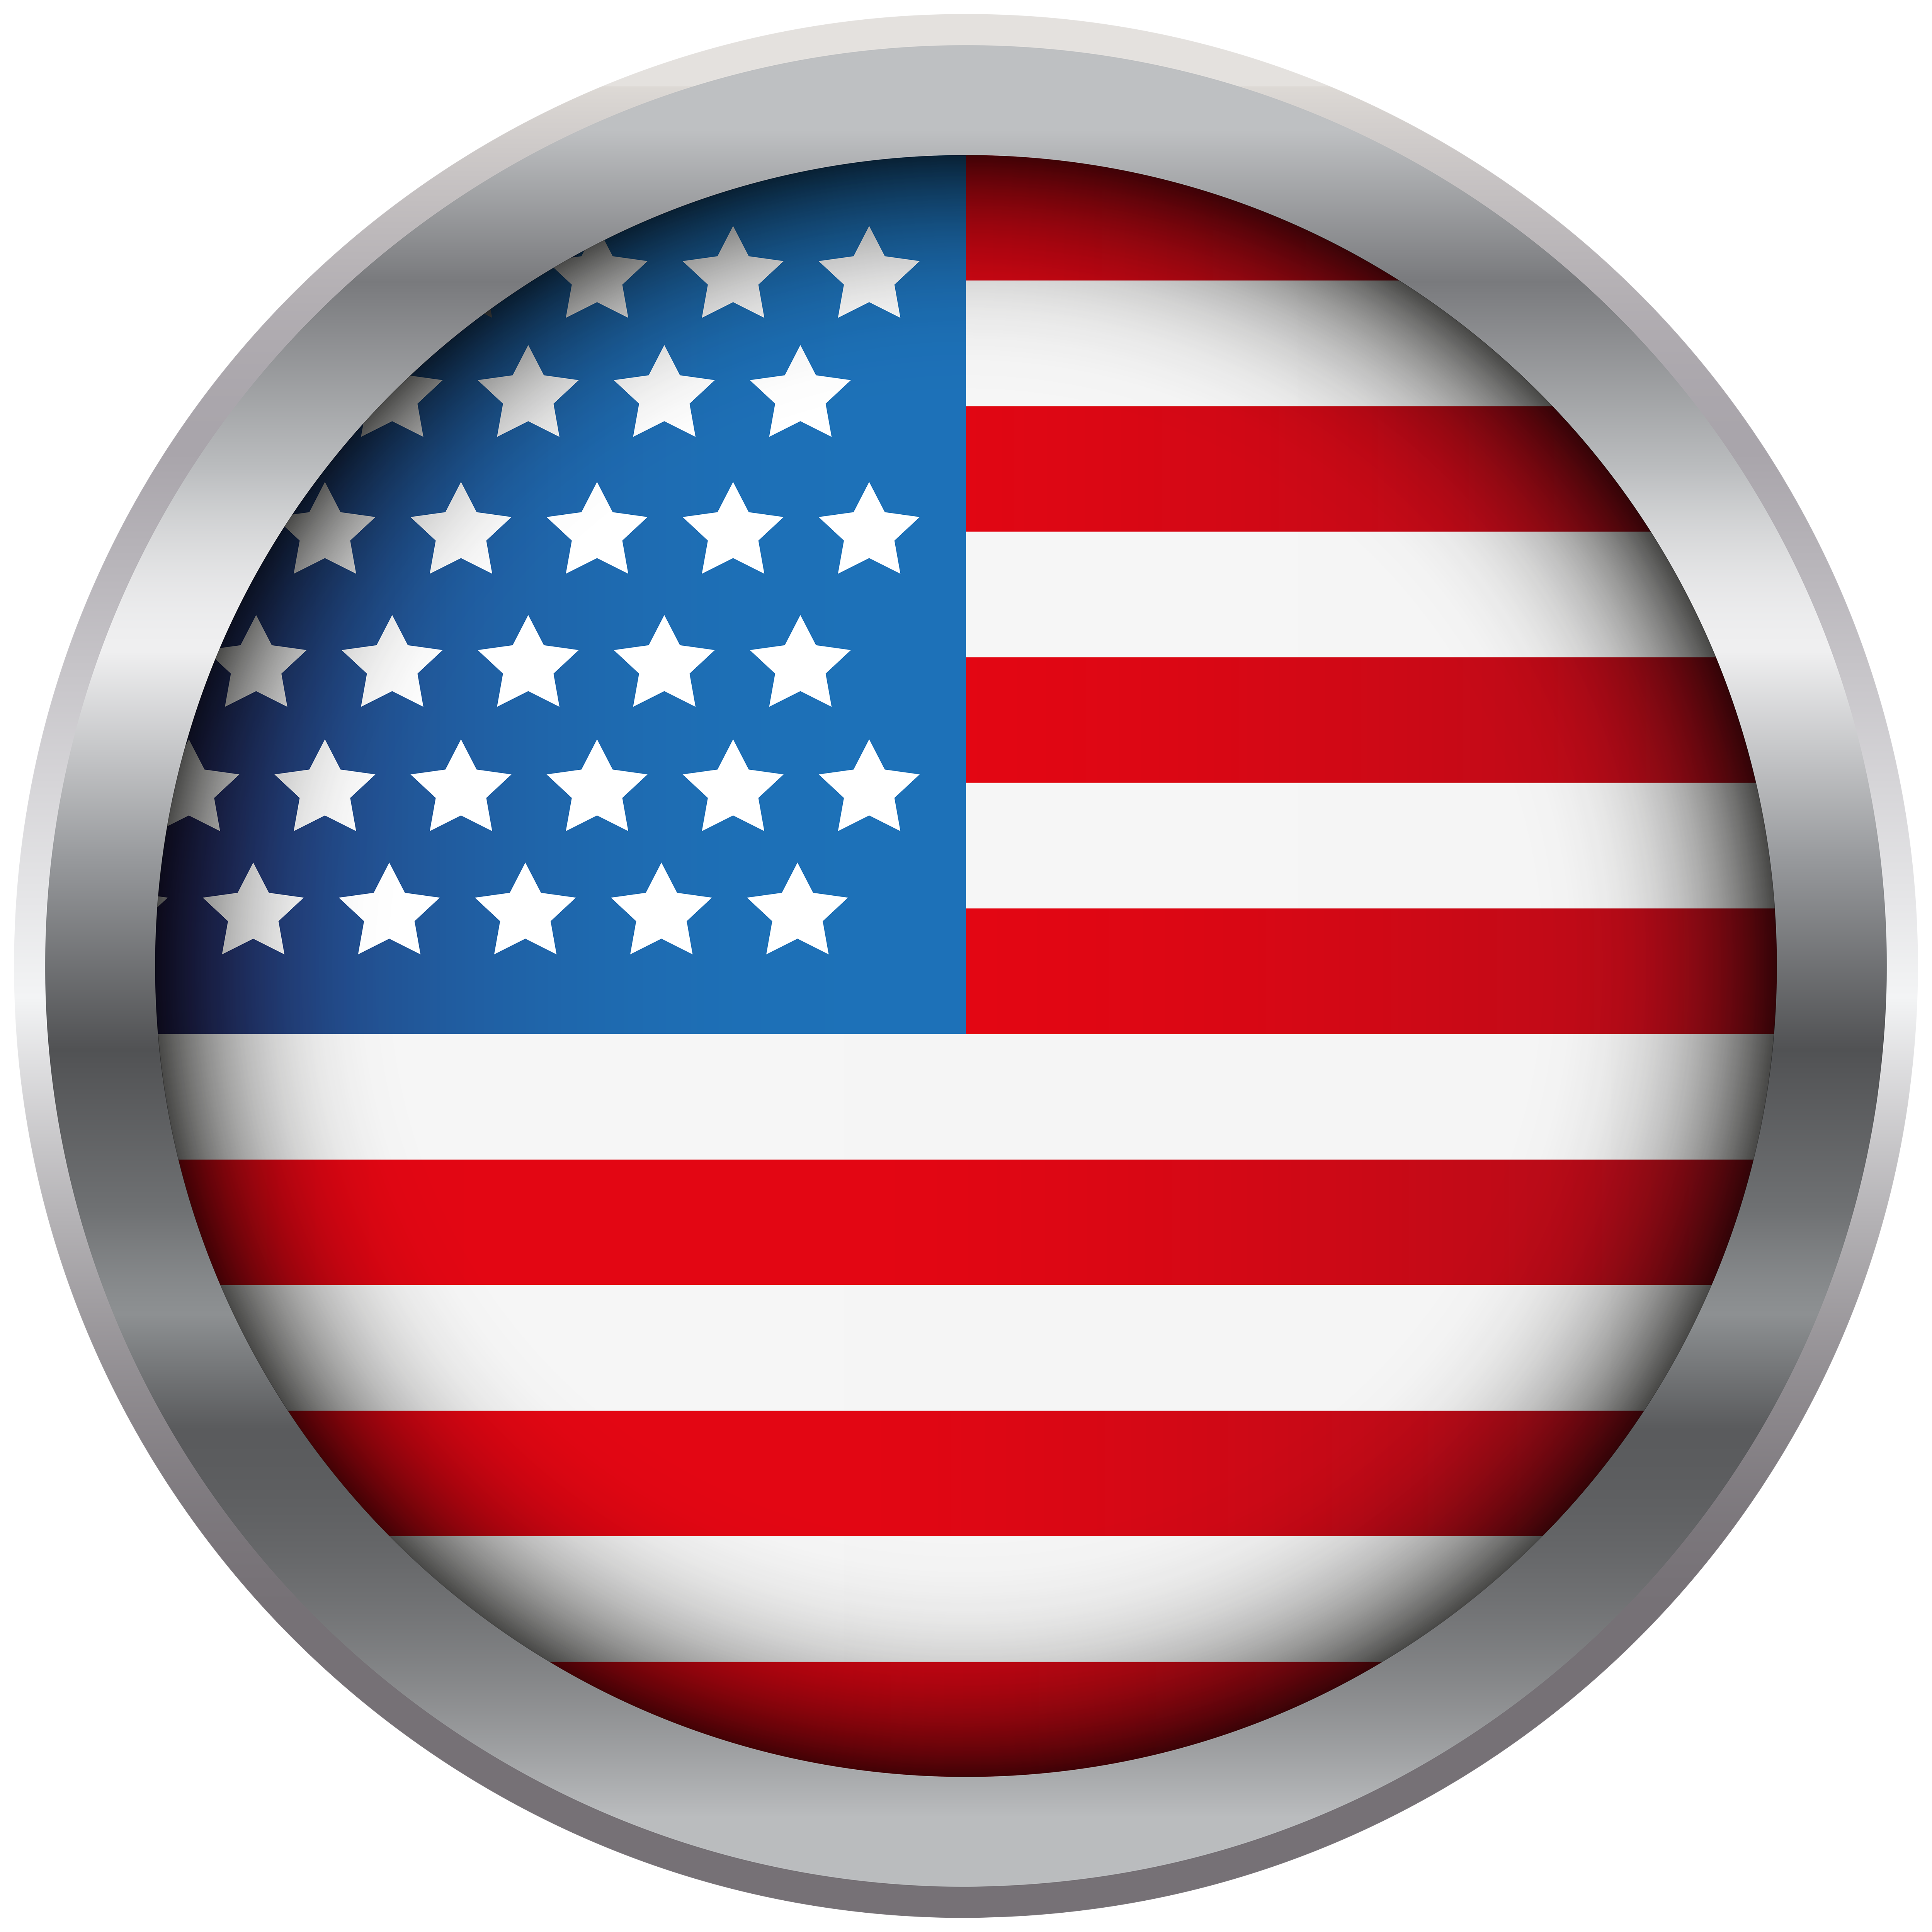 Usa flag decoration clipart clipart royalty free library USA Flag Decoration Transparent PNG Clip Art Image ... clipart royalty free library